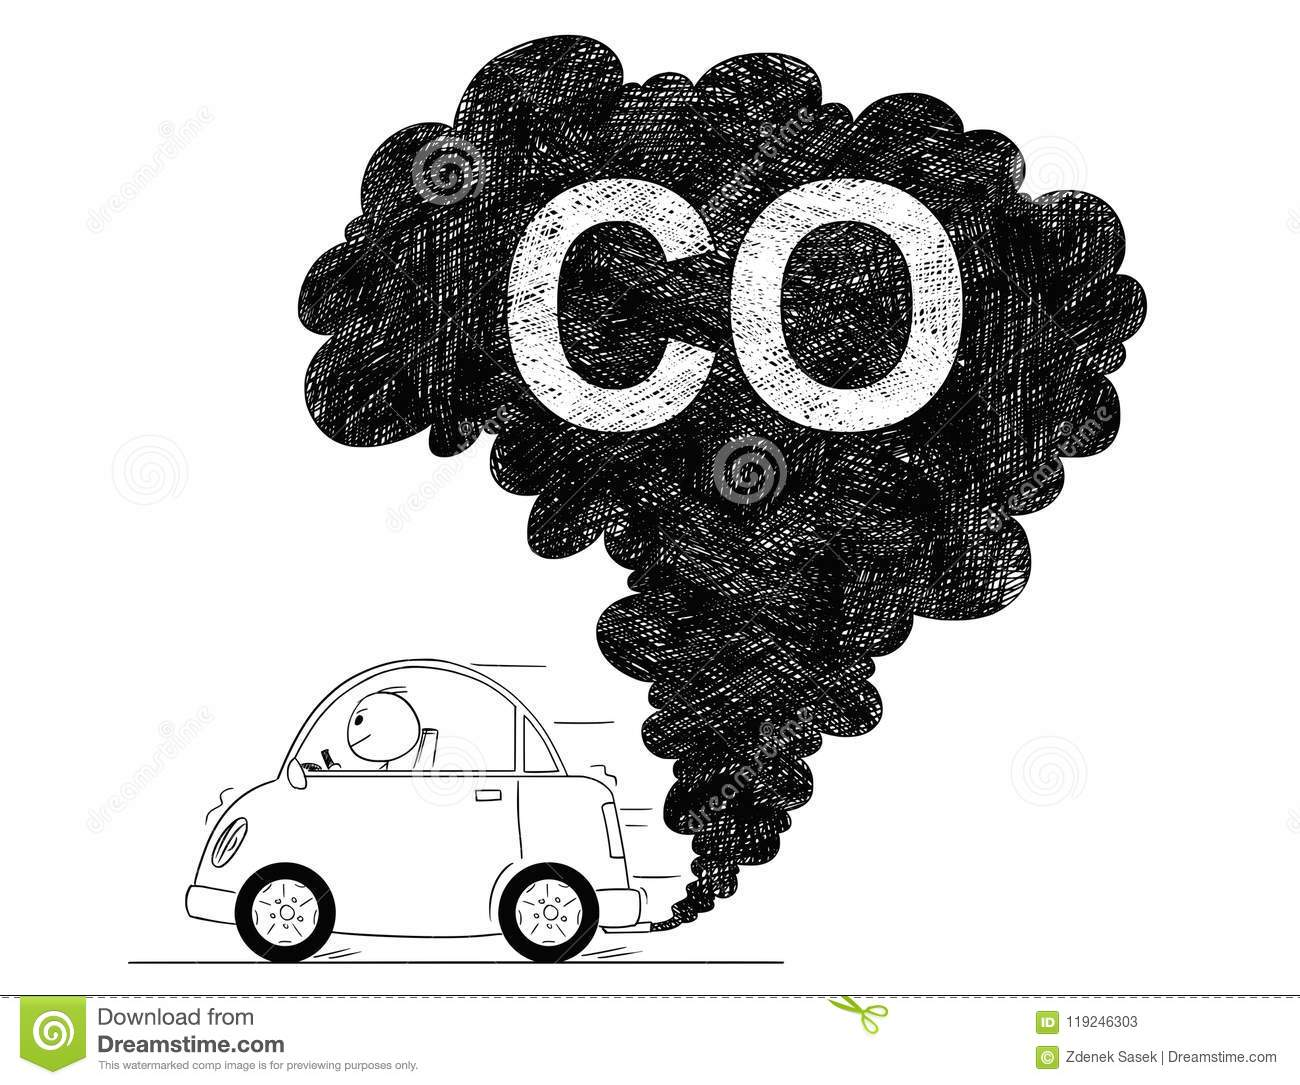 Vector Artistic Drawing Illustration of Car Air CO Pollution